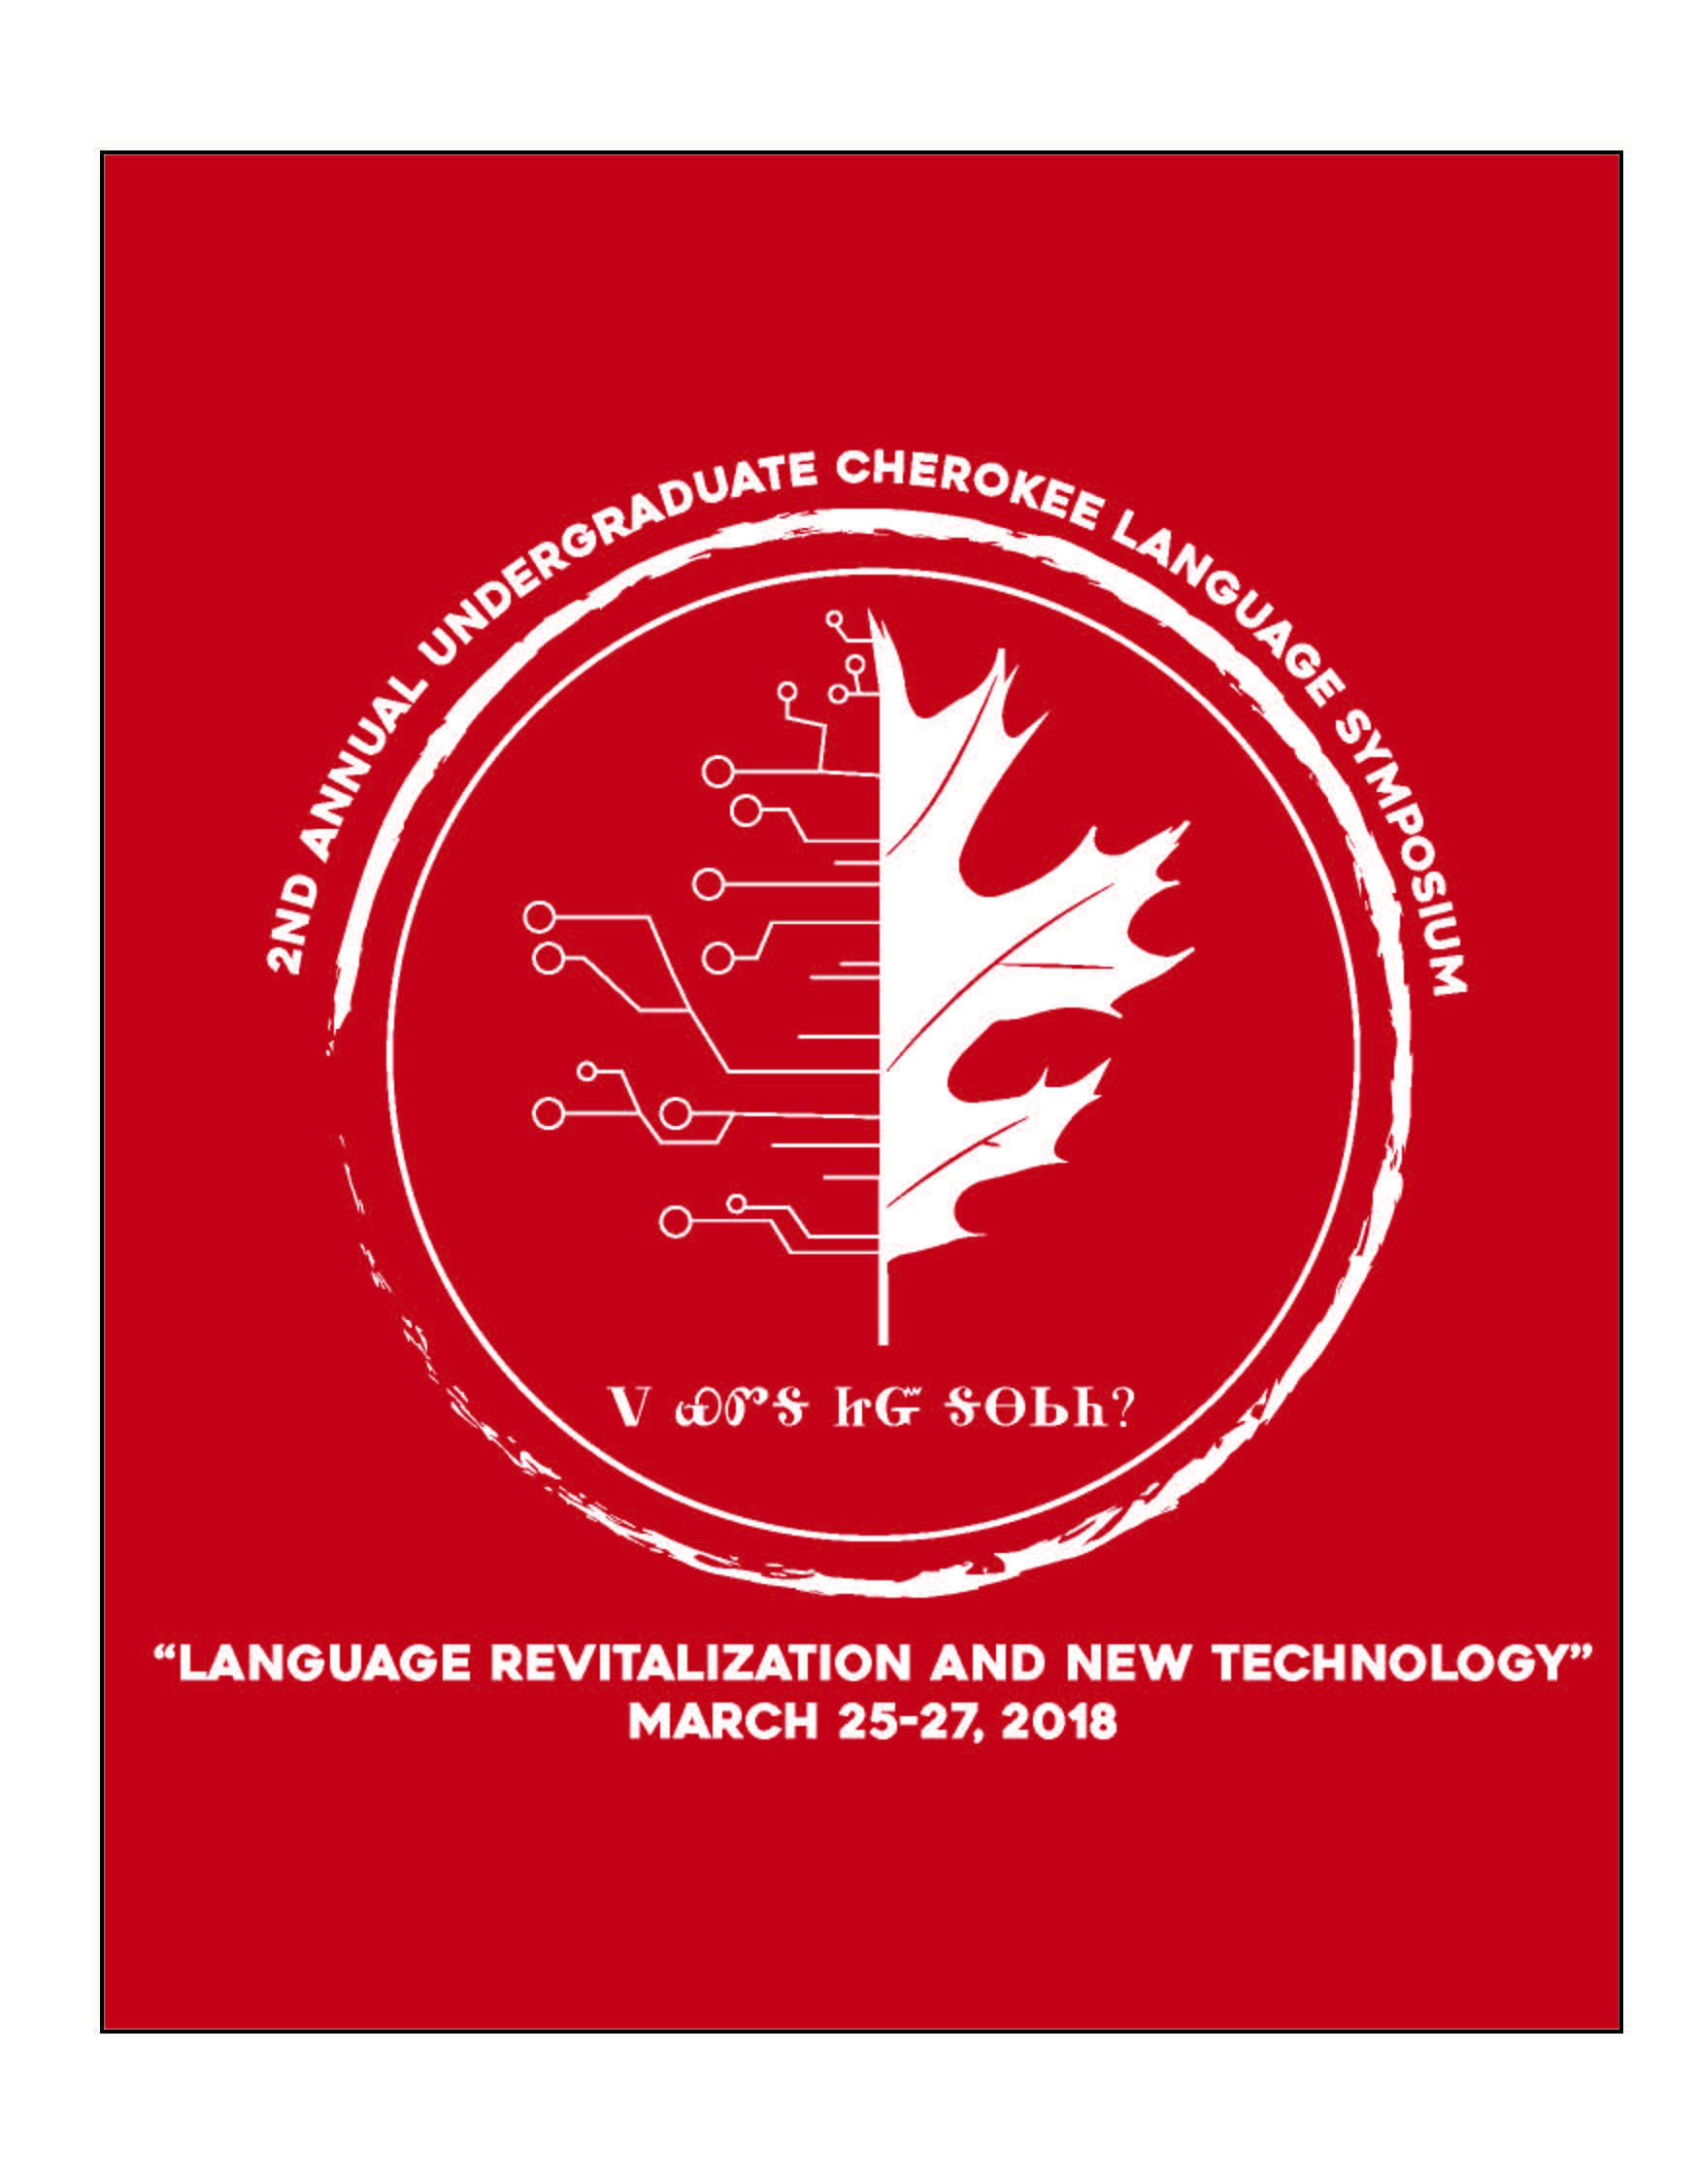 The Second Annual Undergraduate Cherokee Language Symposium logo and poster representing a hybrid of nature and technology.